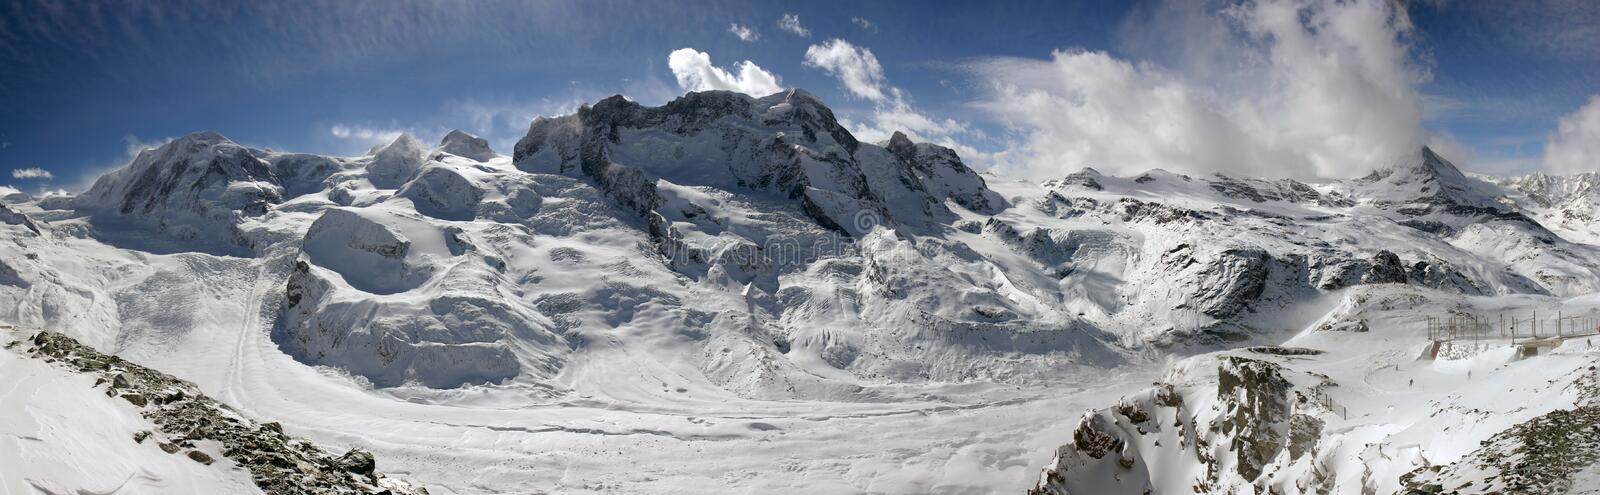 Download Swiss alpine panorama stock photo. Image of aerial, slopes - 2022656